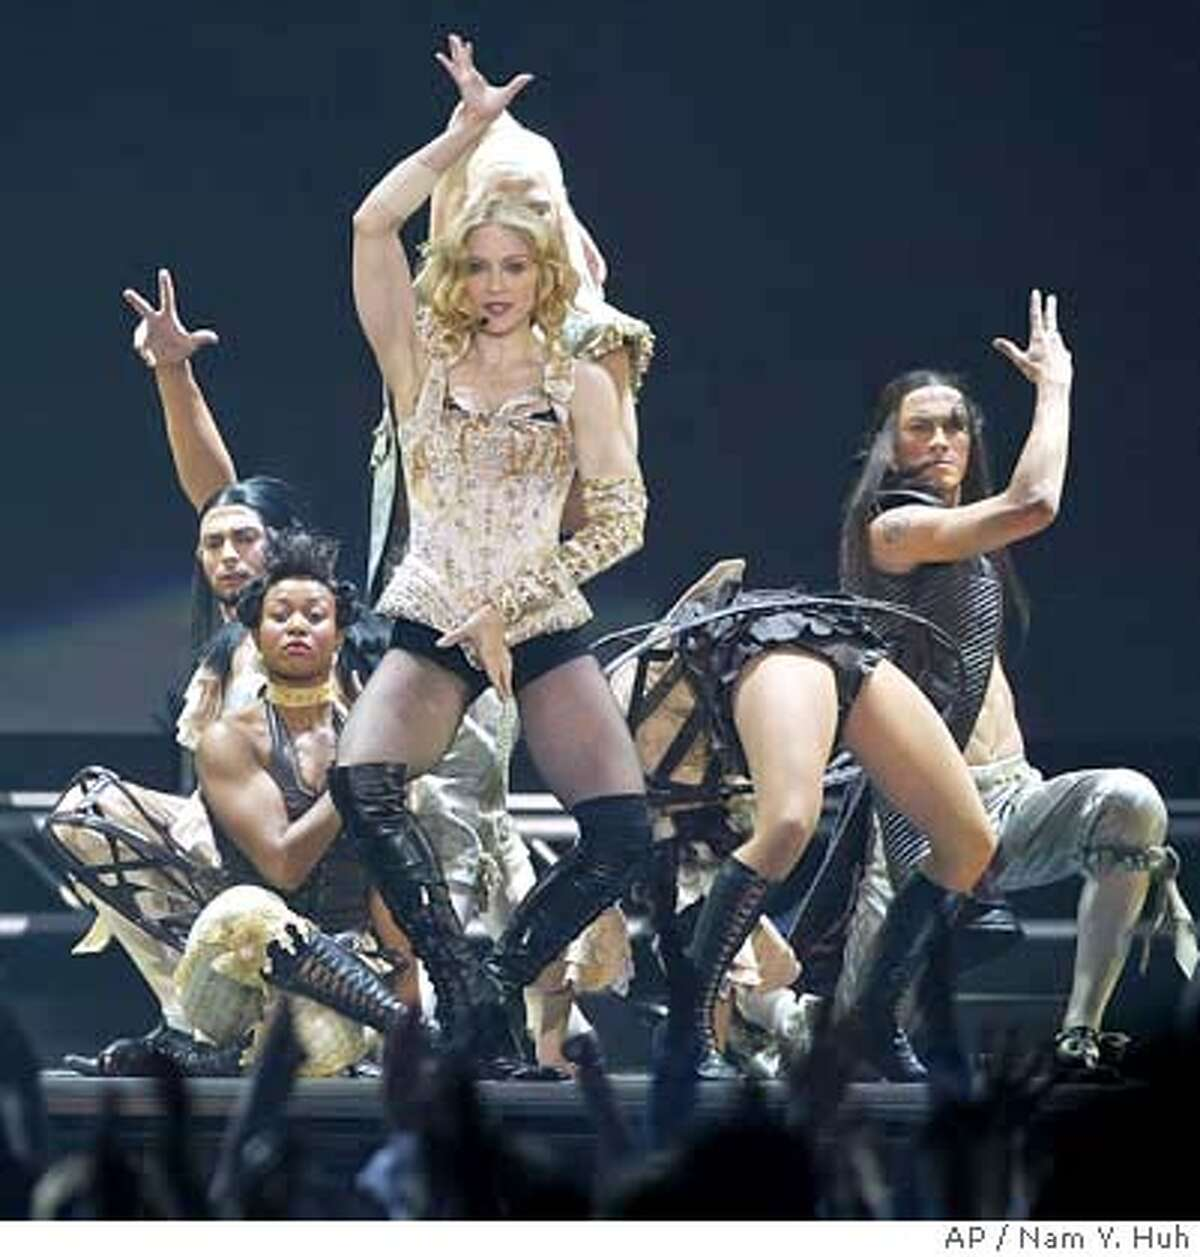 Madonna performs at the Great Western Forum, Monday, May 24, 2004, in Los Angeles. (AP Photo/Nam Y. Huh)